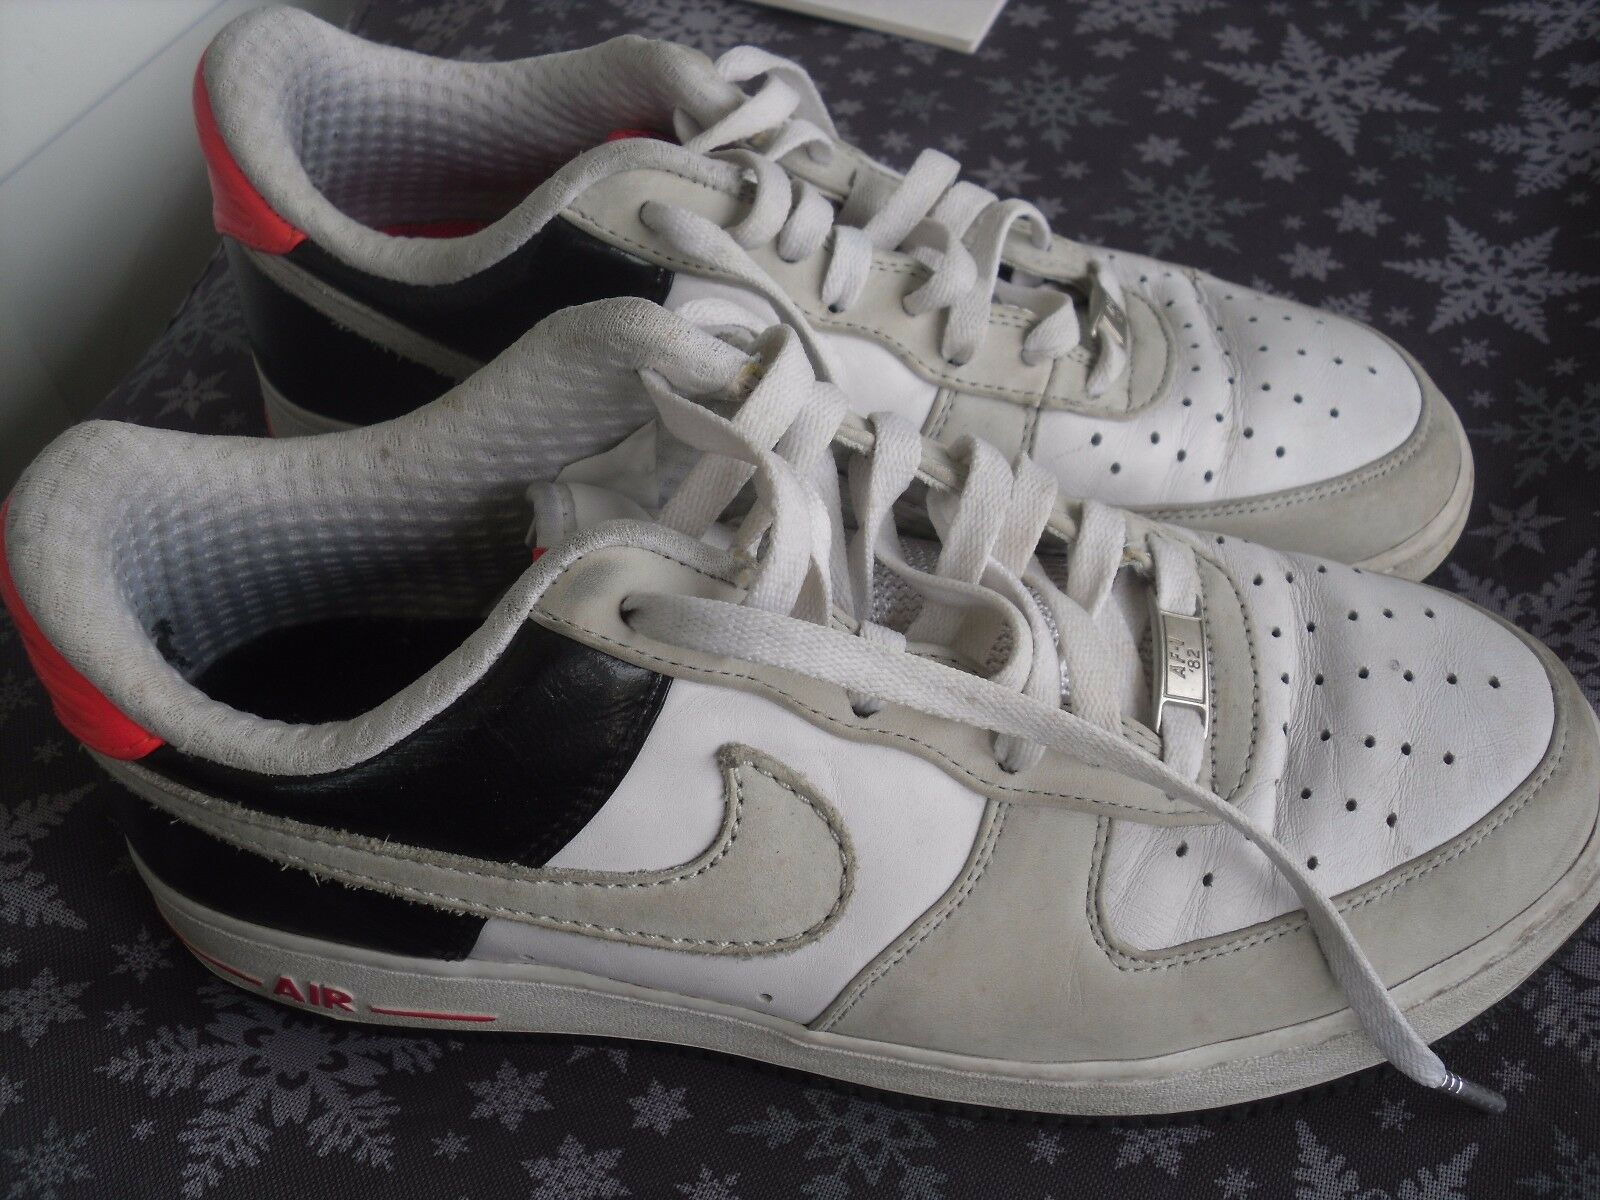 Nike Air Force 1 White Nuetral Grey Price reduction New shoes for men and women, limited time discount